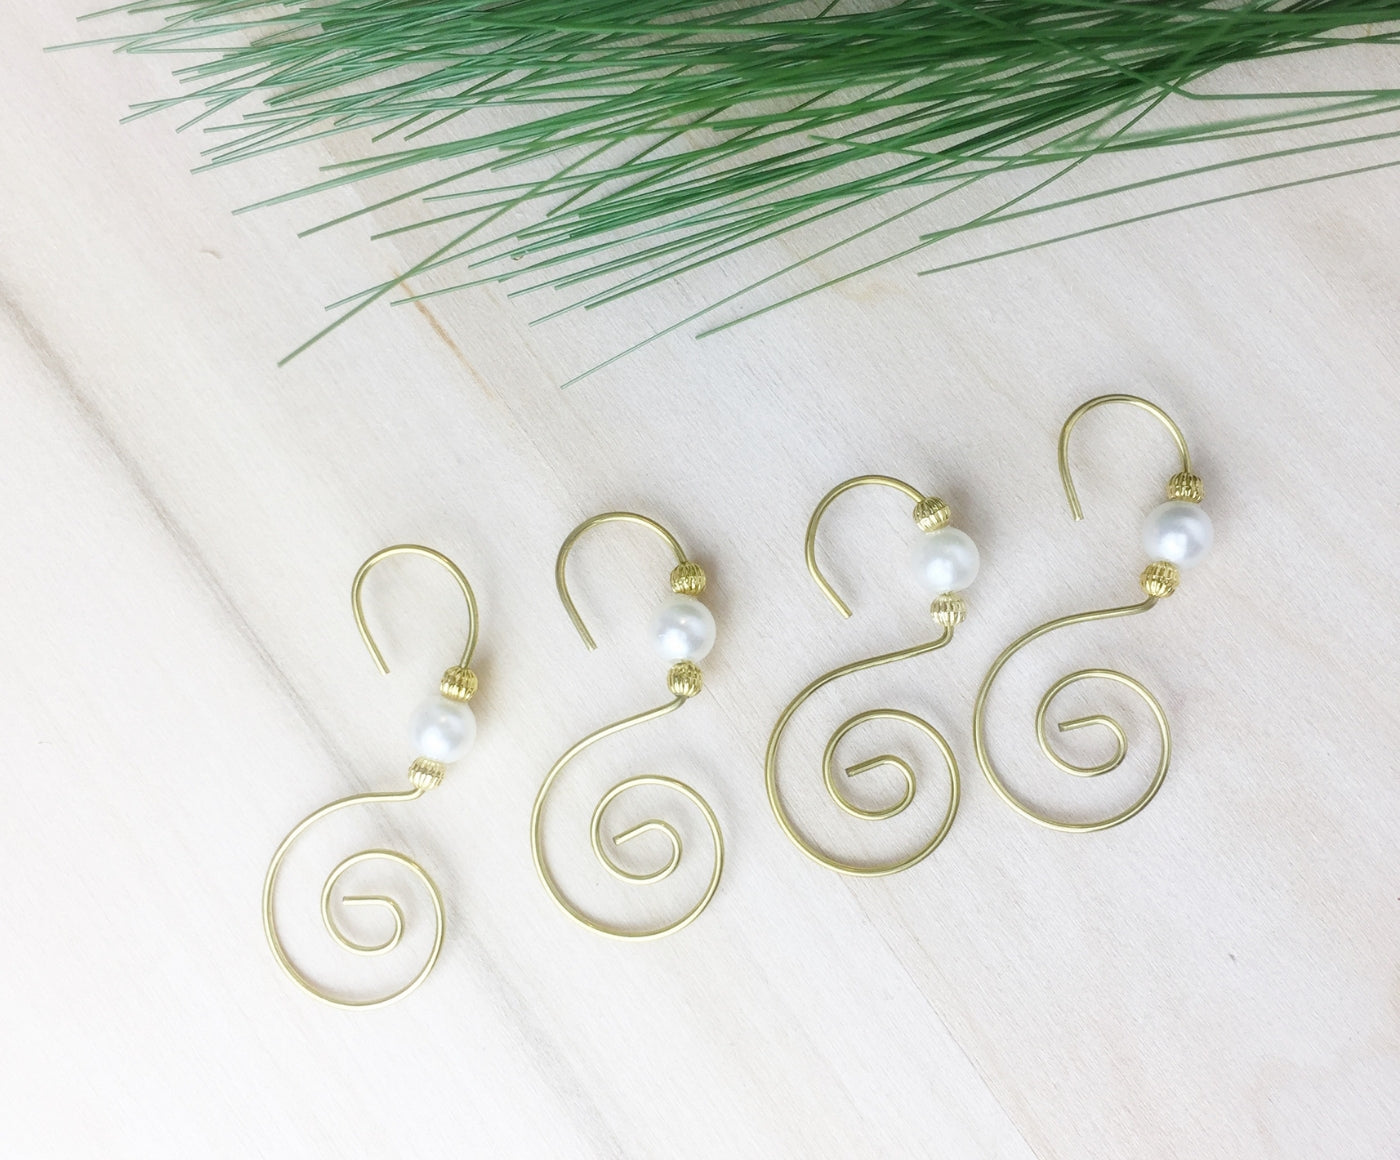 Gold fancy ornament hooks